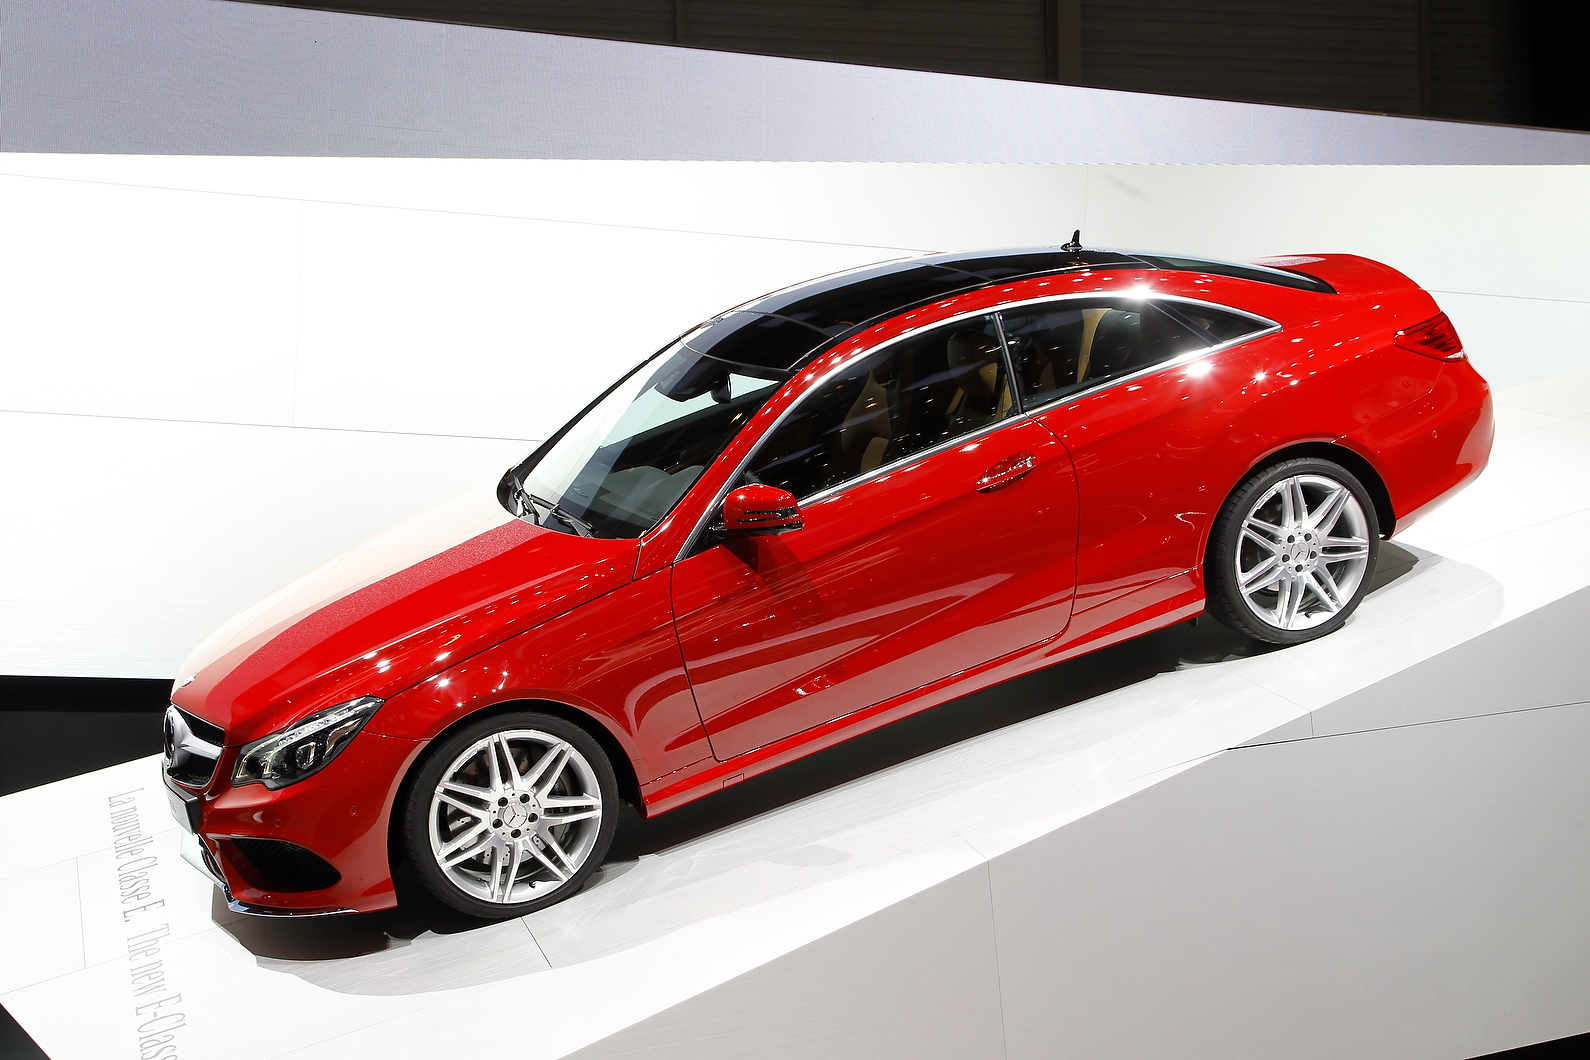 The facelifted E-class has made its European premiere in Geneva